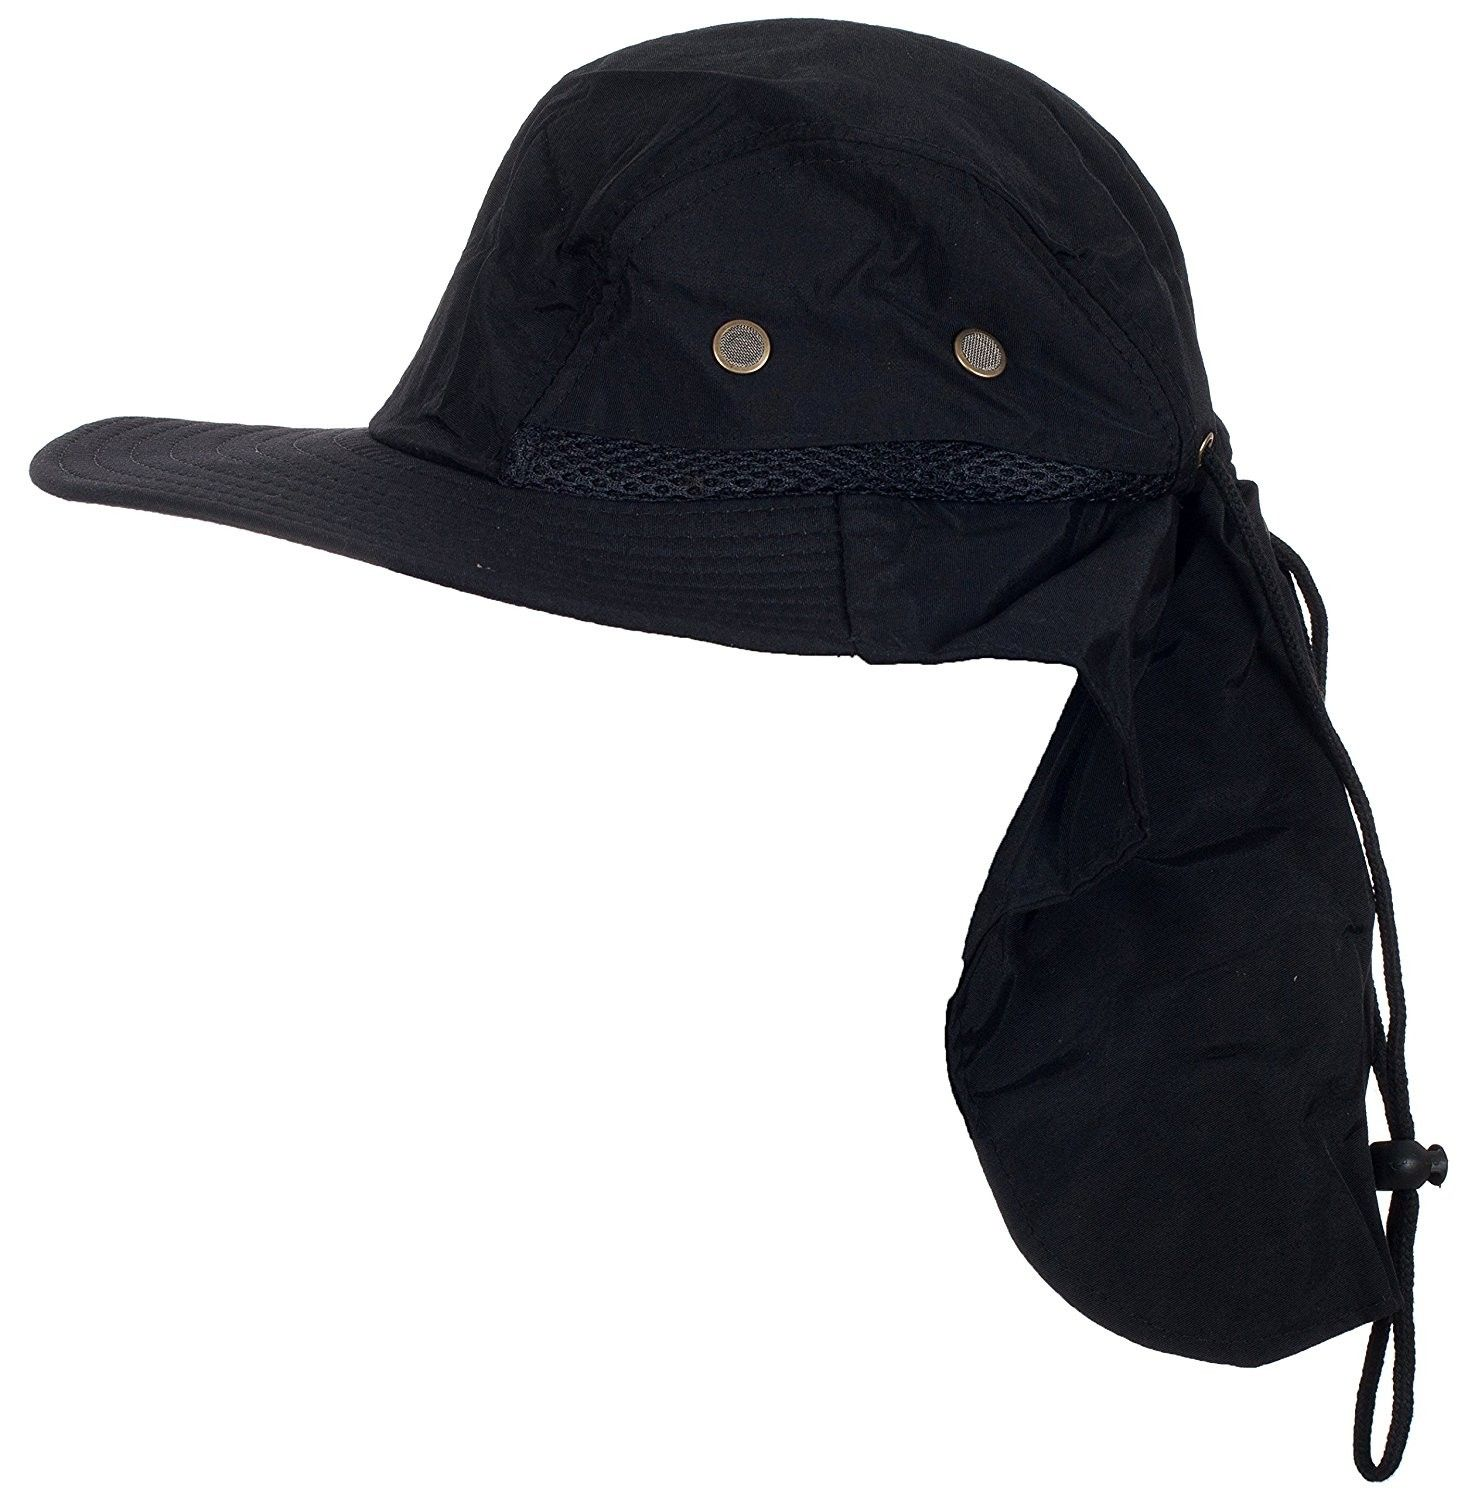 Desert Sun Fisherman Hunter Bucket Hat - Black - CZ11WPONZUD - Hats  amp   Caps 9e0c80114b1